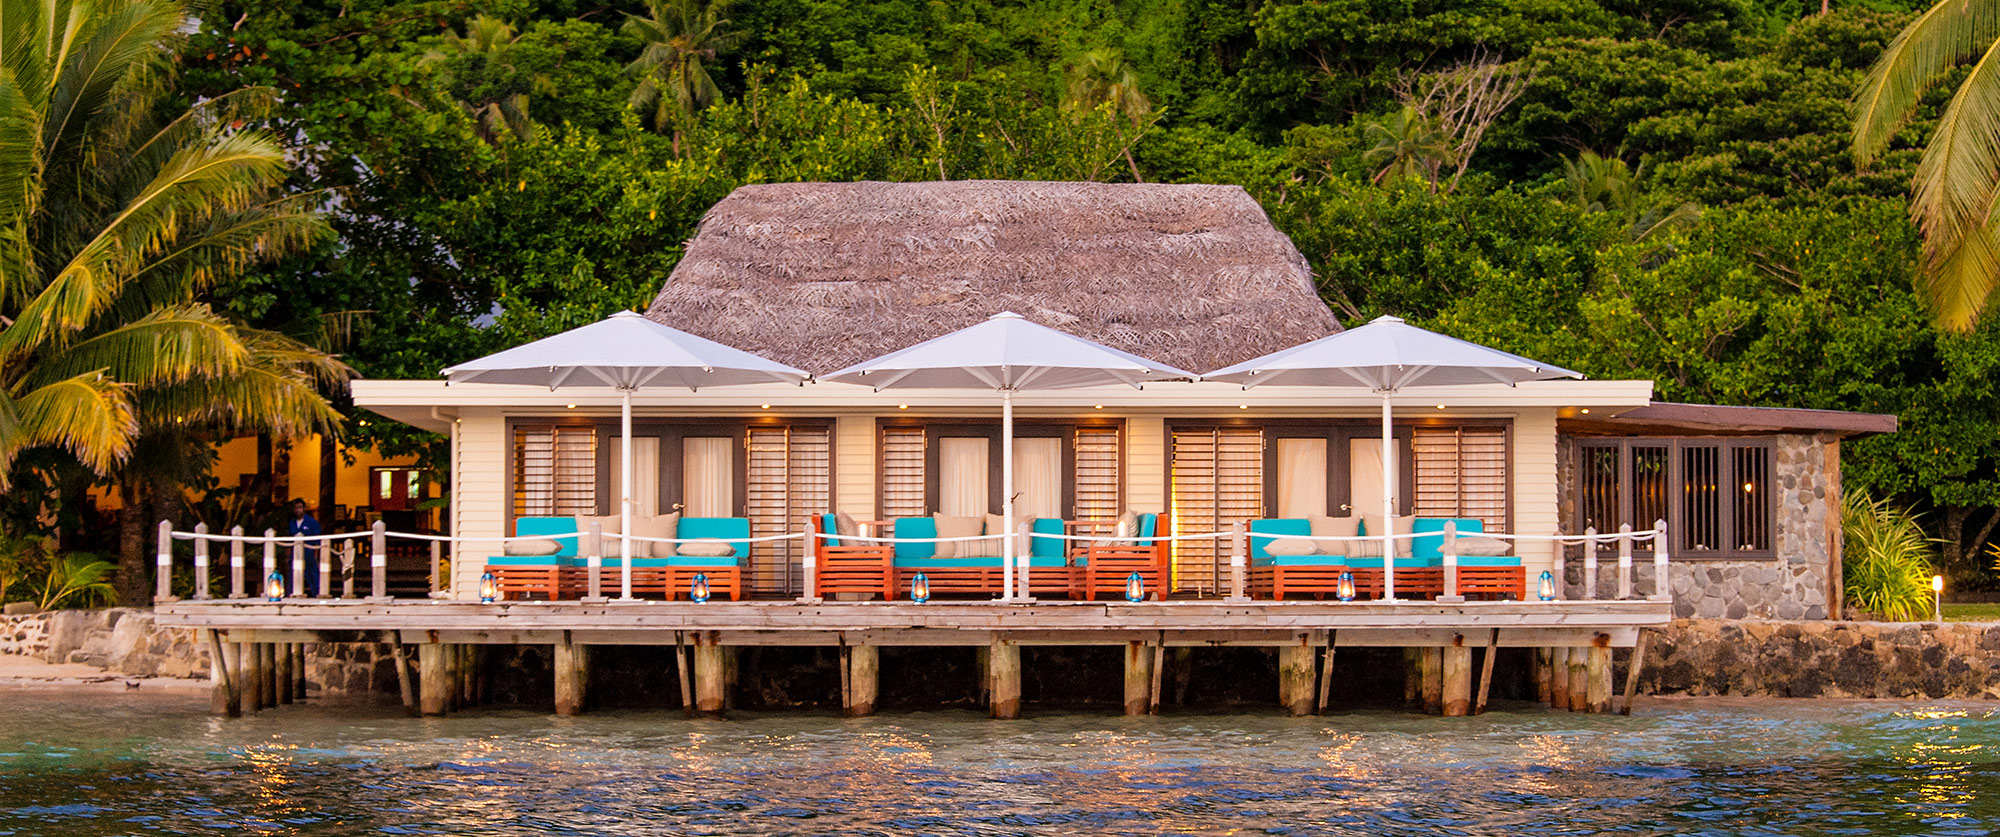 Matangi Private Island Resort Luxury Fiji Vacation Down